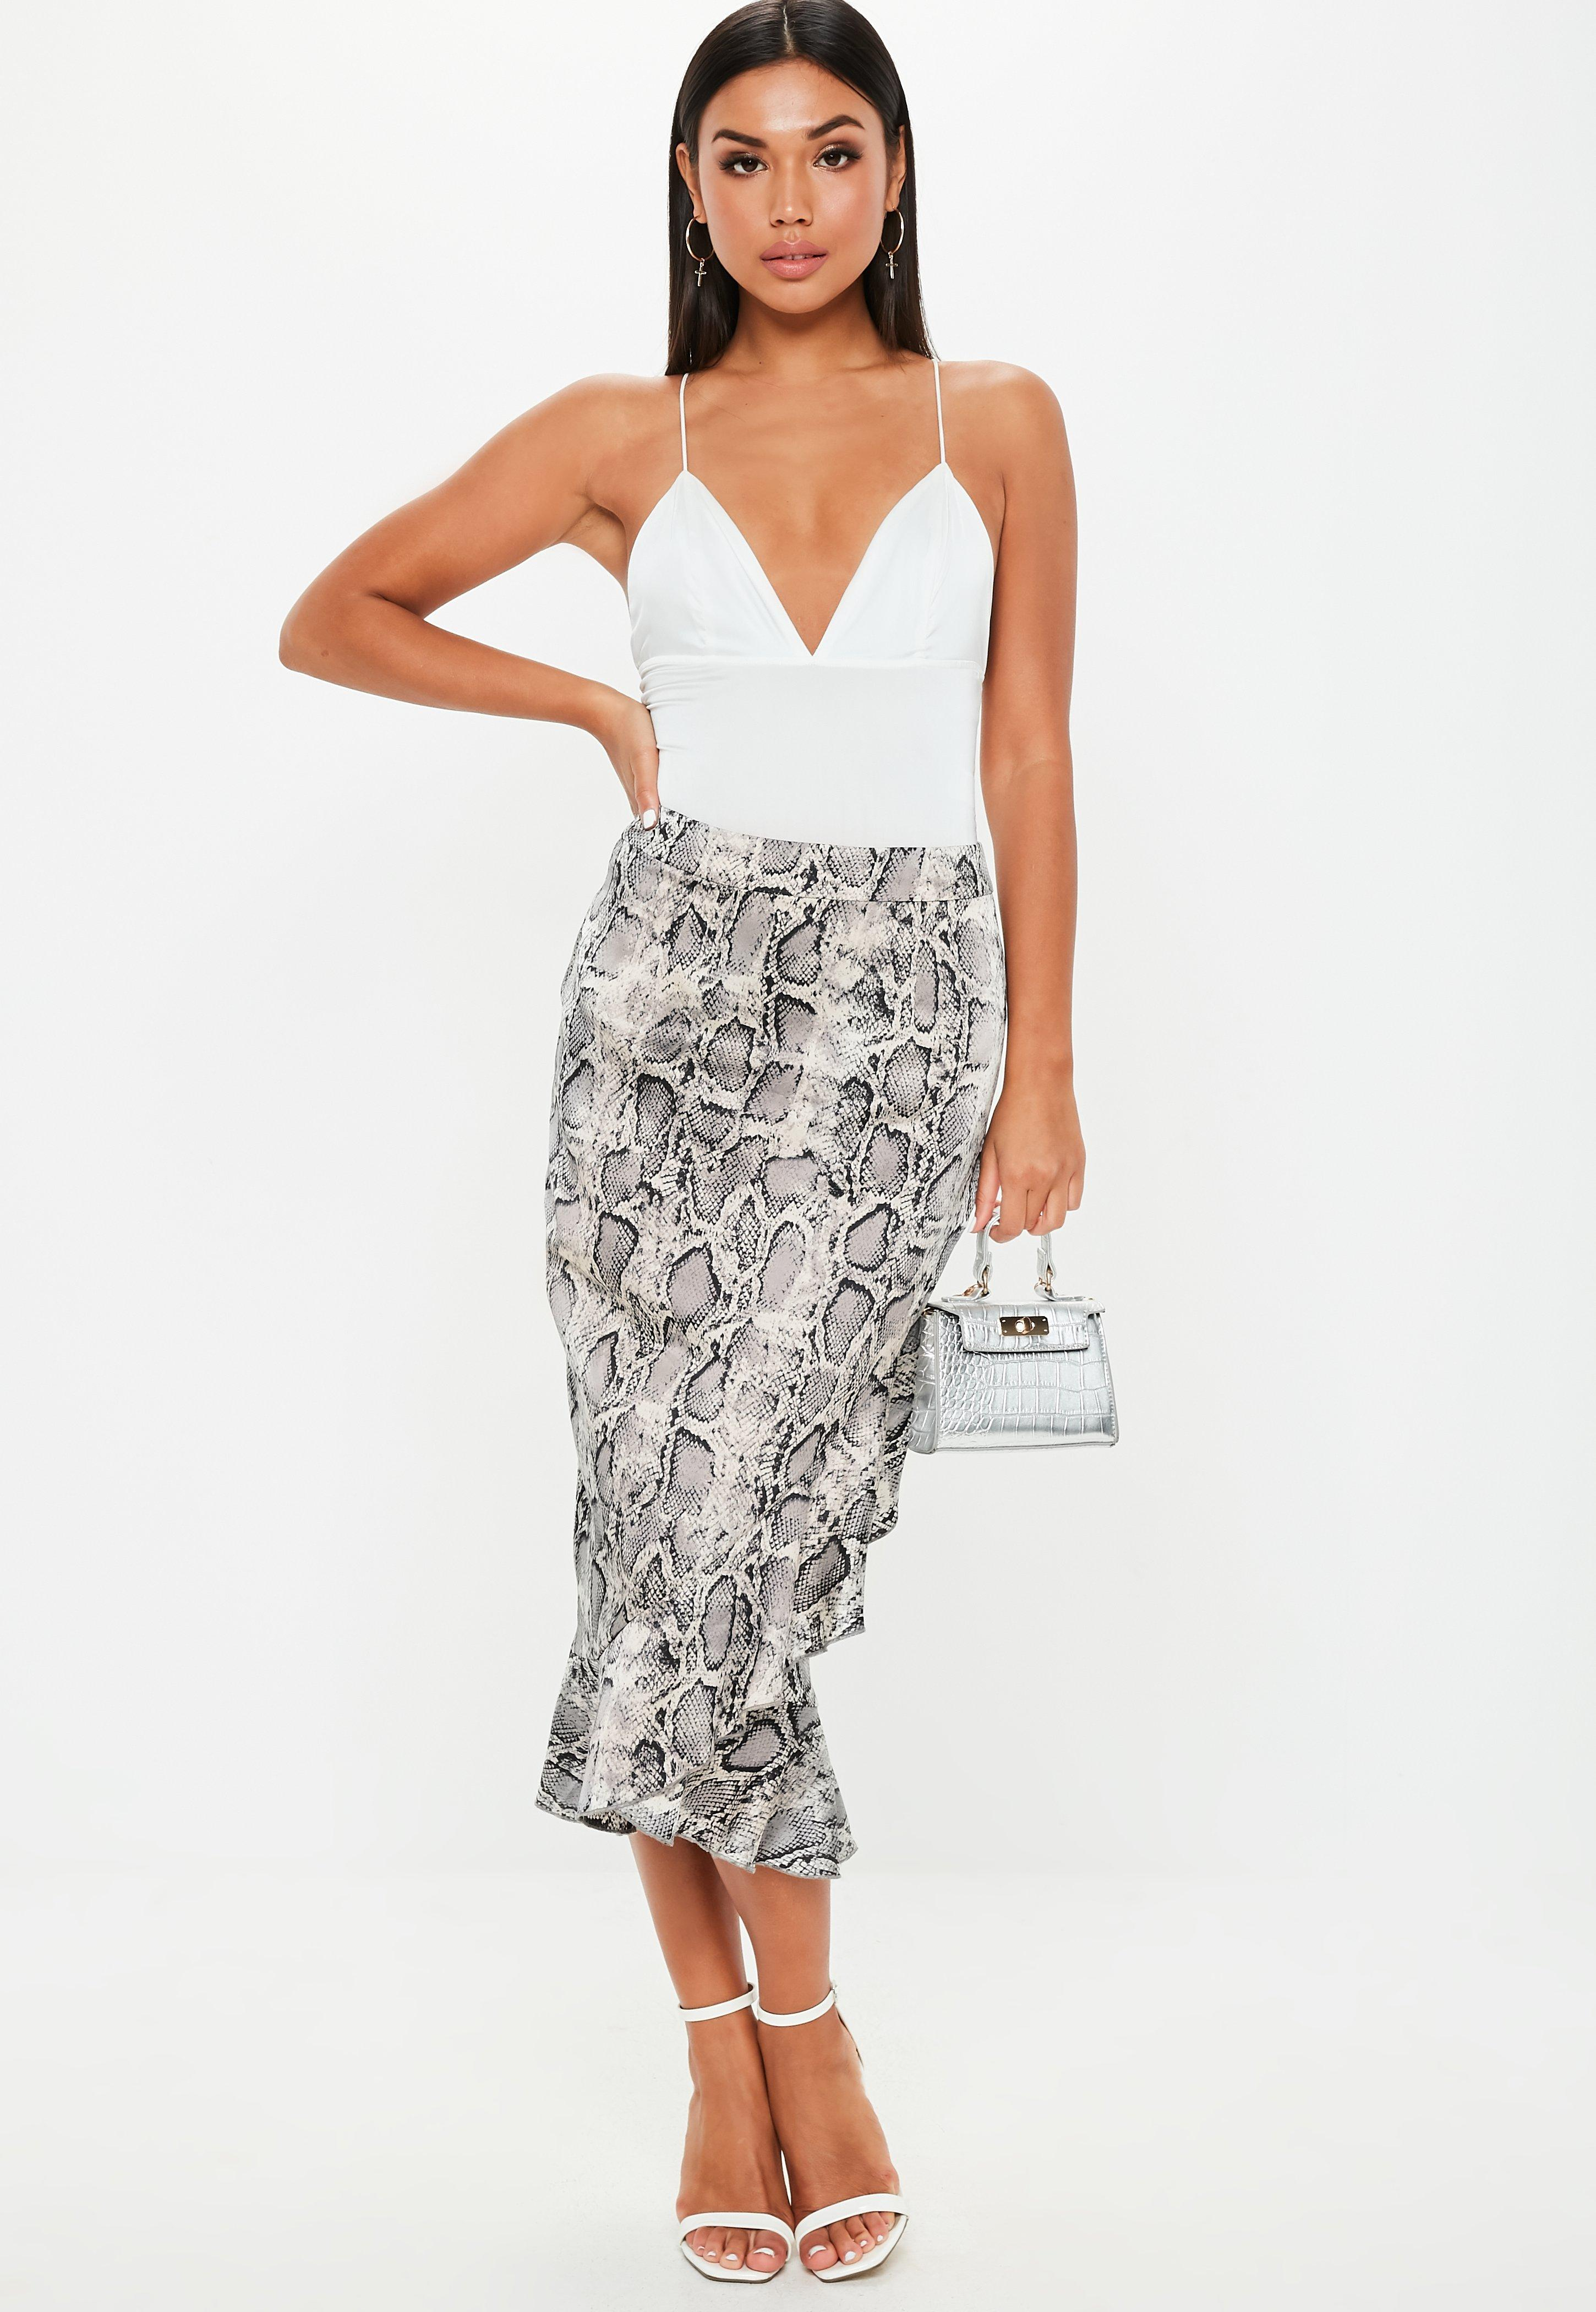 Midi Skirts - Knee   Calf Length Skirts Online   Missguided 265d3e6a22